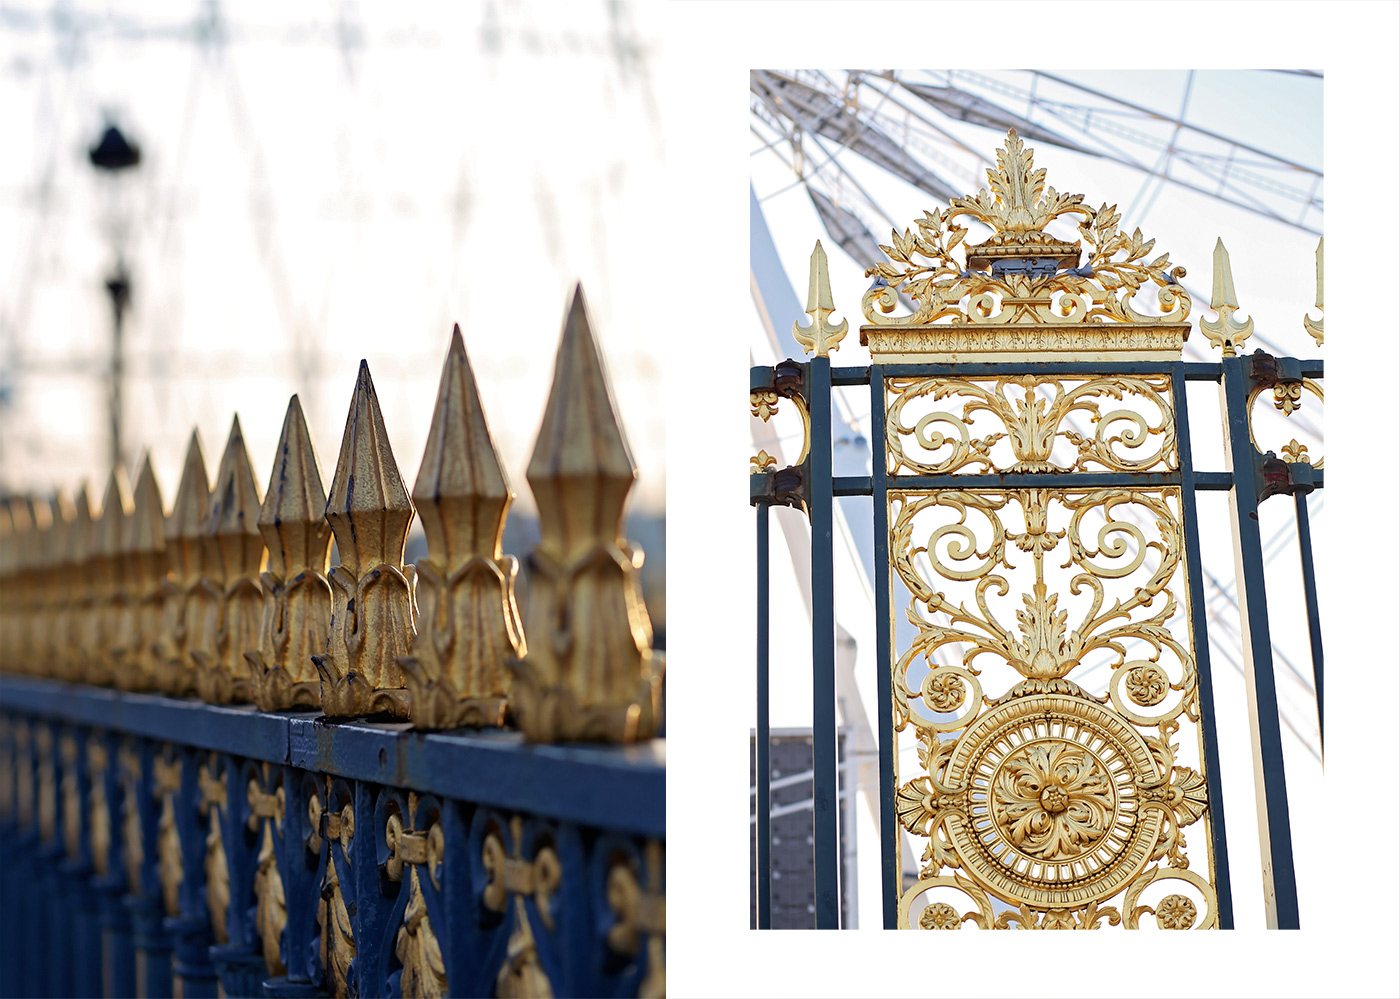 The Golden gates at Jardin des tuileries photographed by Armenyl.com